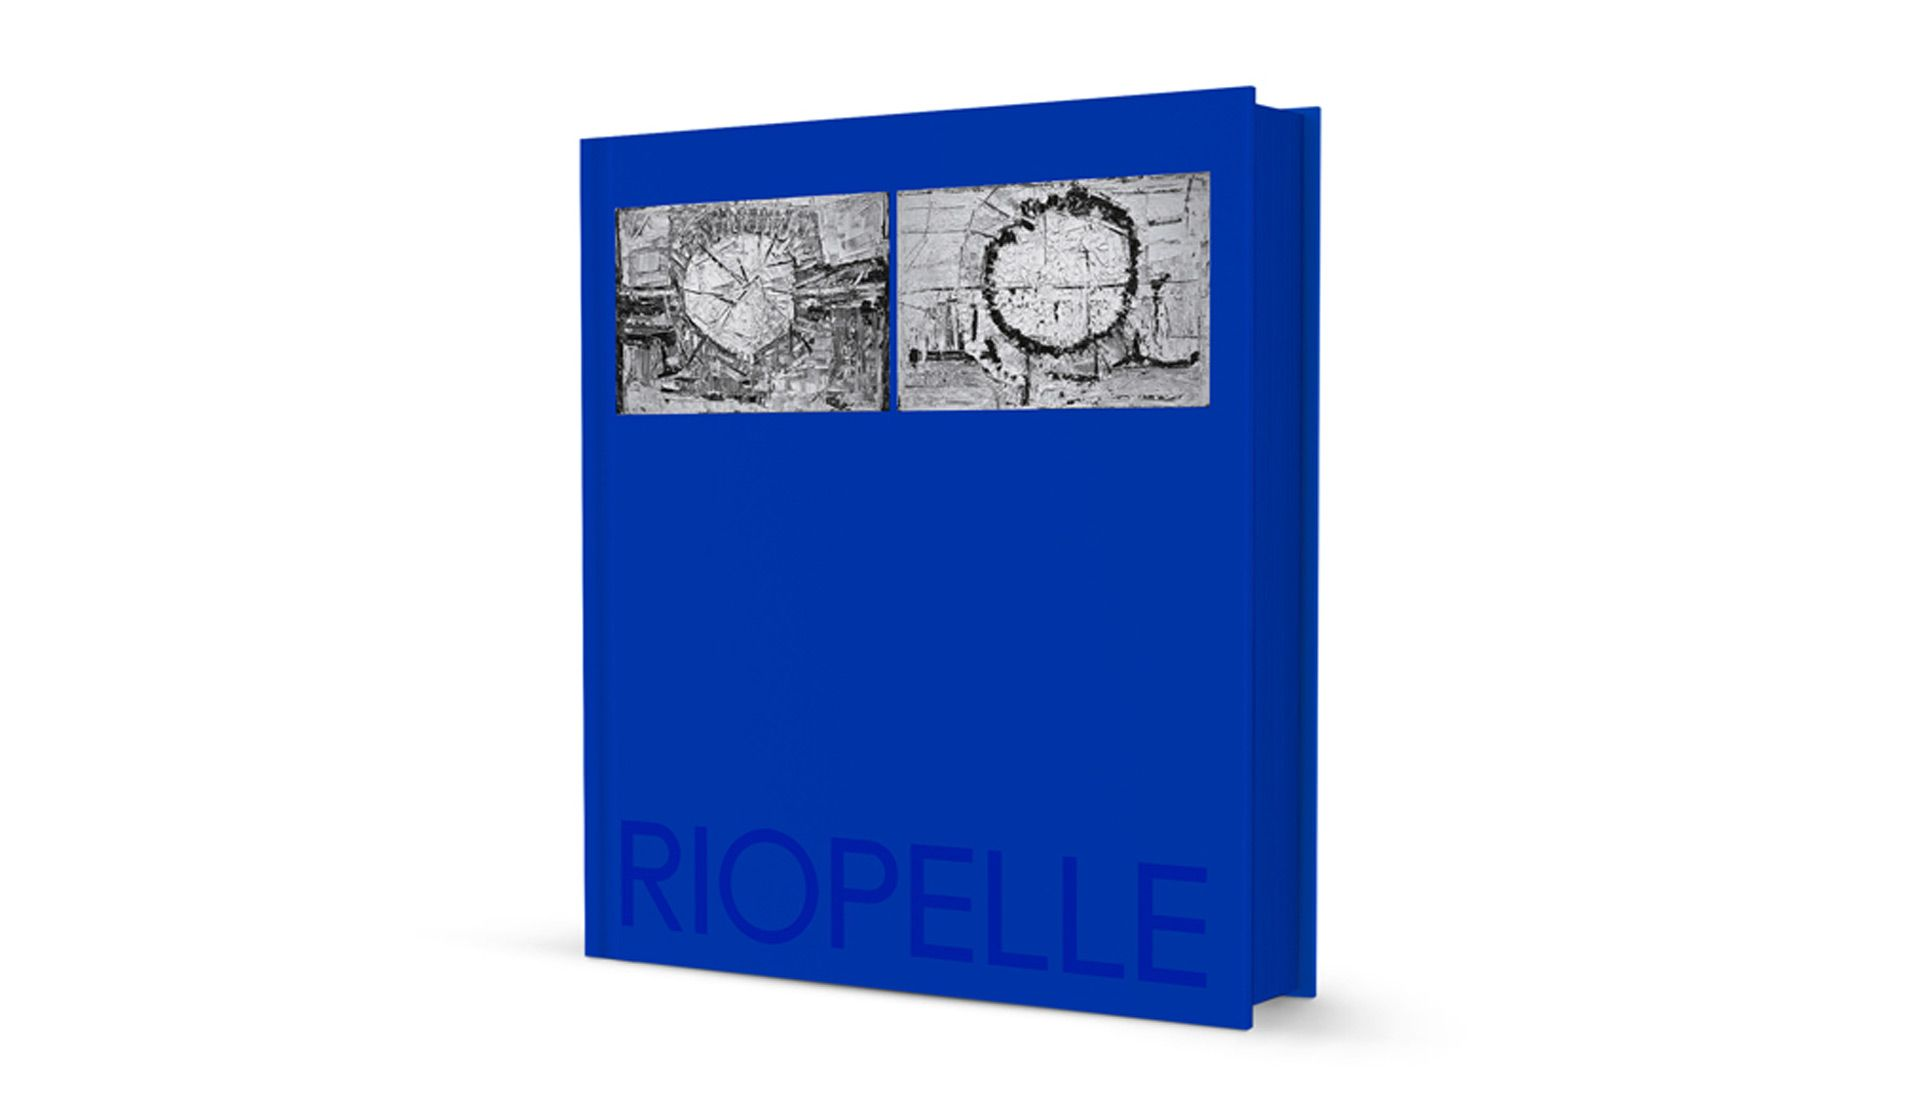 Publication, Riopelle: The Call of Northern Landscapes and Indigenous Cultures